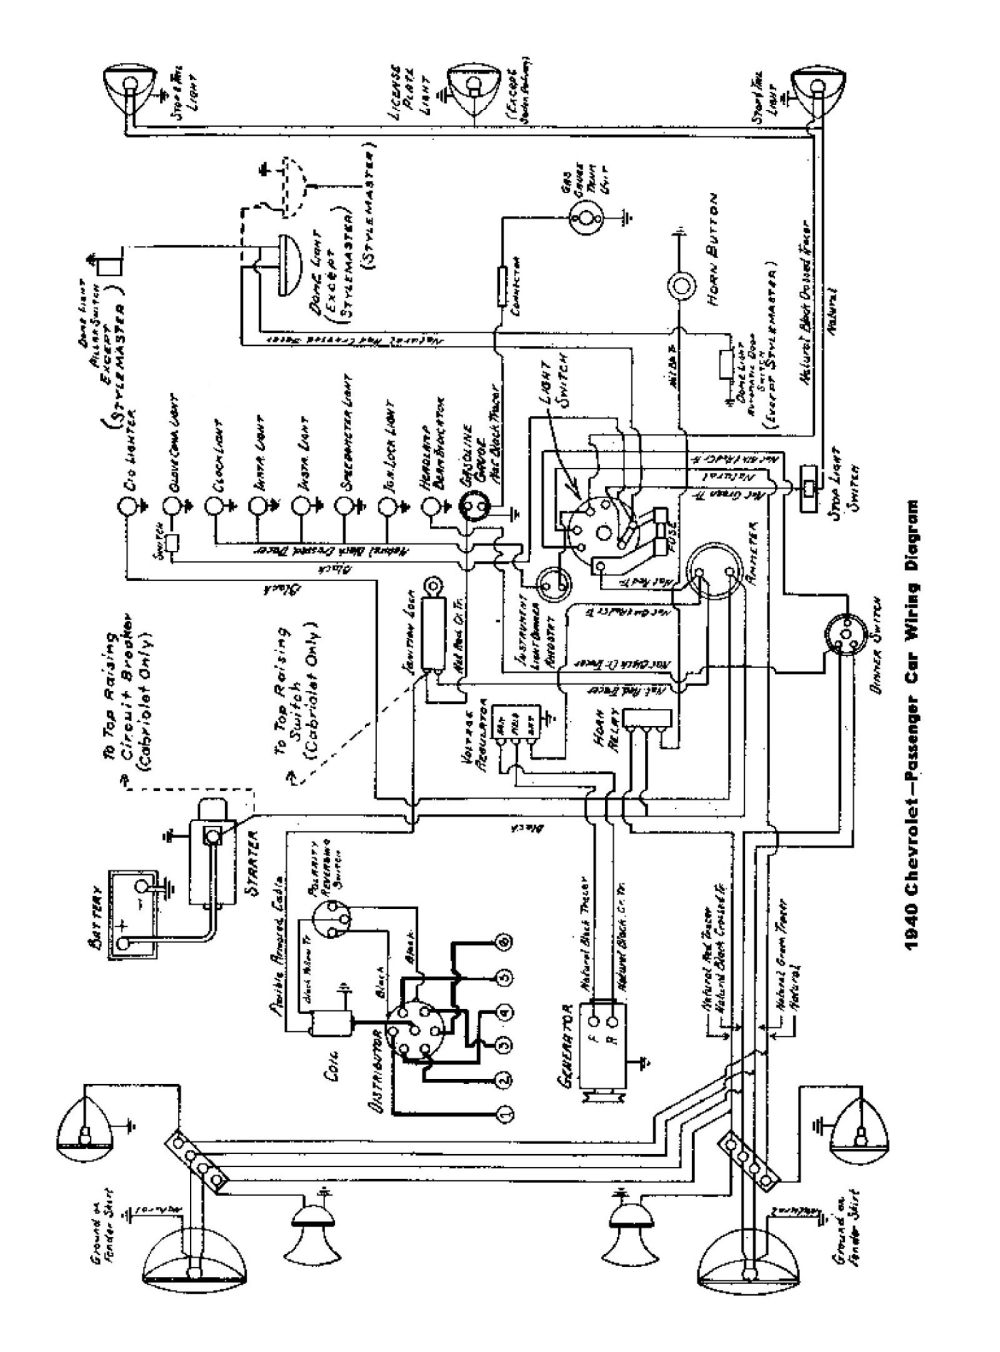 medium resolution of 72 88 royale wiring diagram